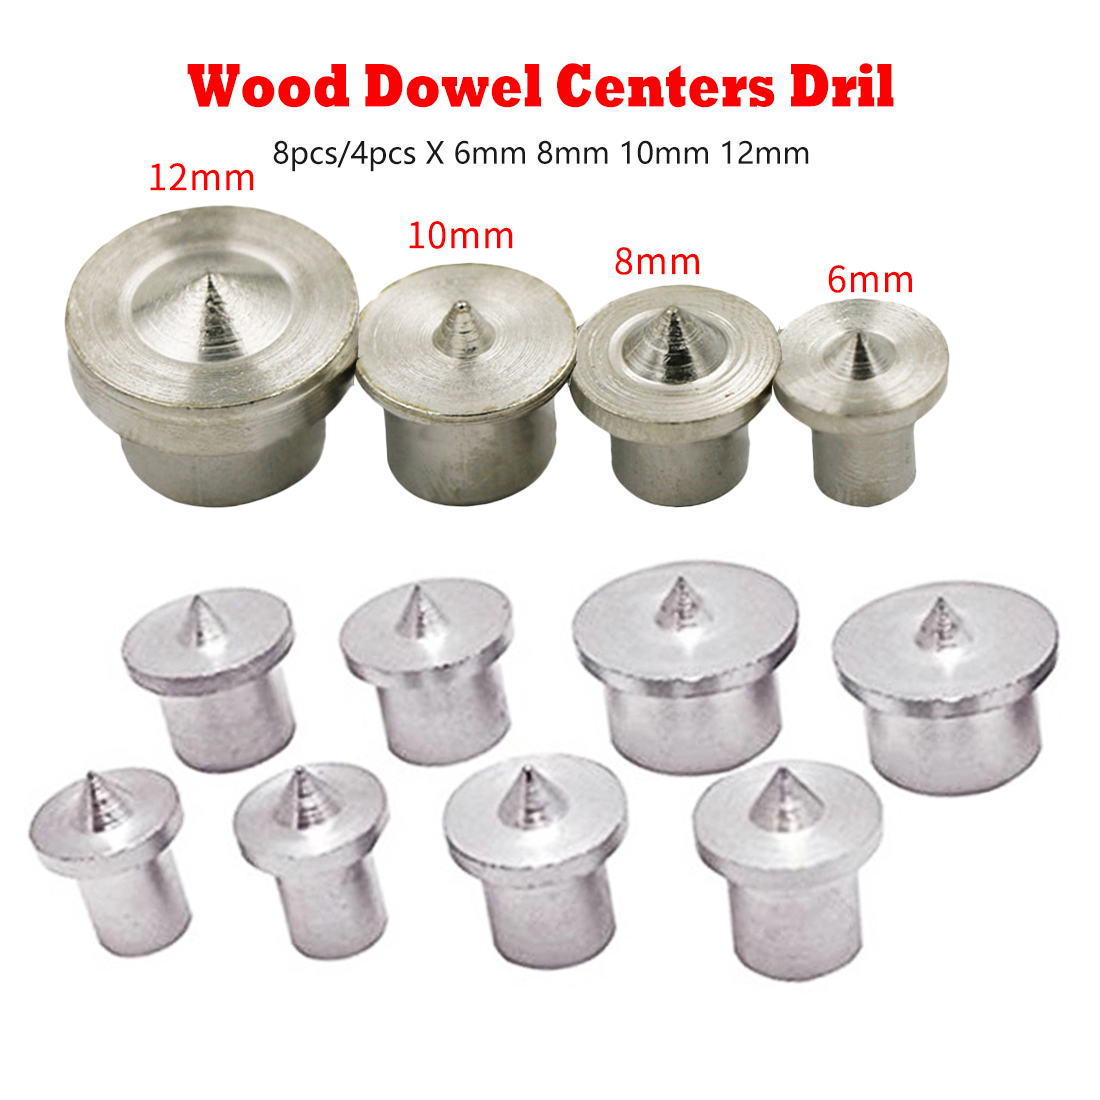 Woodworking Tools Dowel Centre Point Pin Set 8pcs/4pcs 6mm 8mm10mm 12mm Dowel Tenon Center Set Transfer Plugs Wood Drill